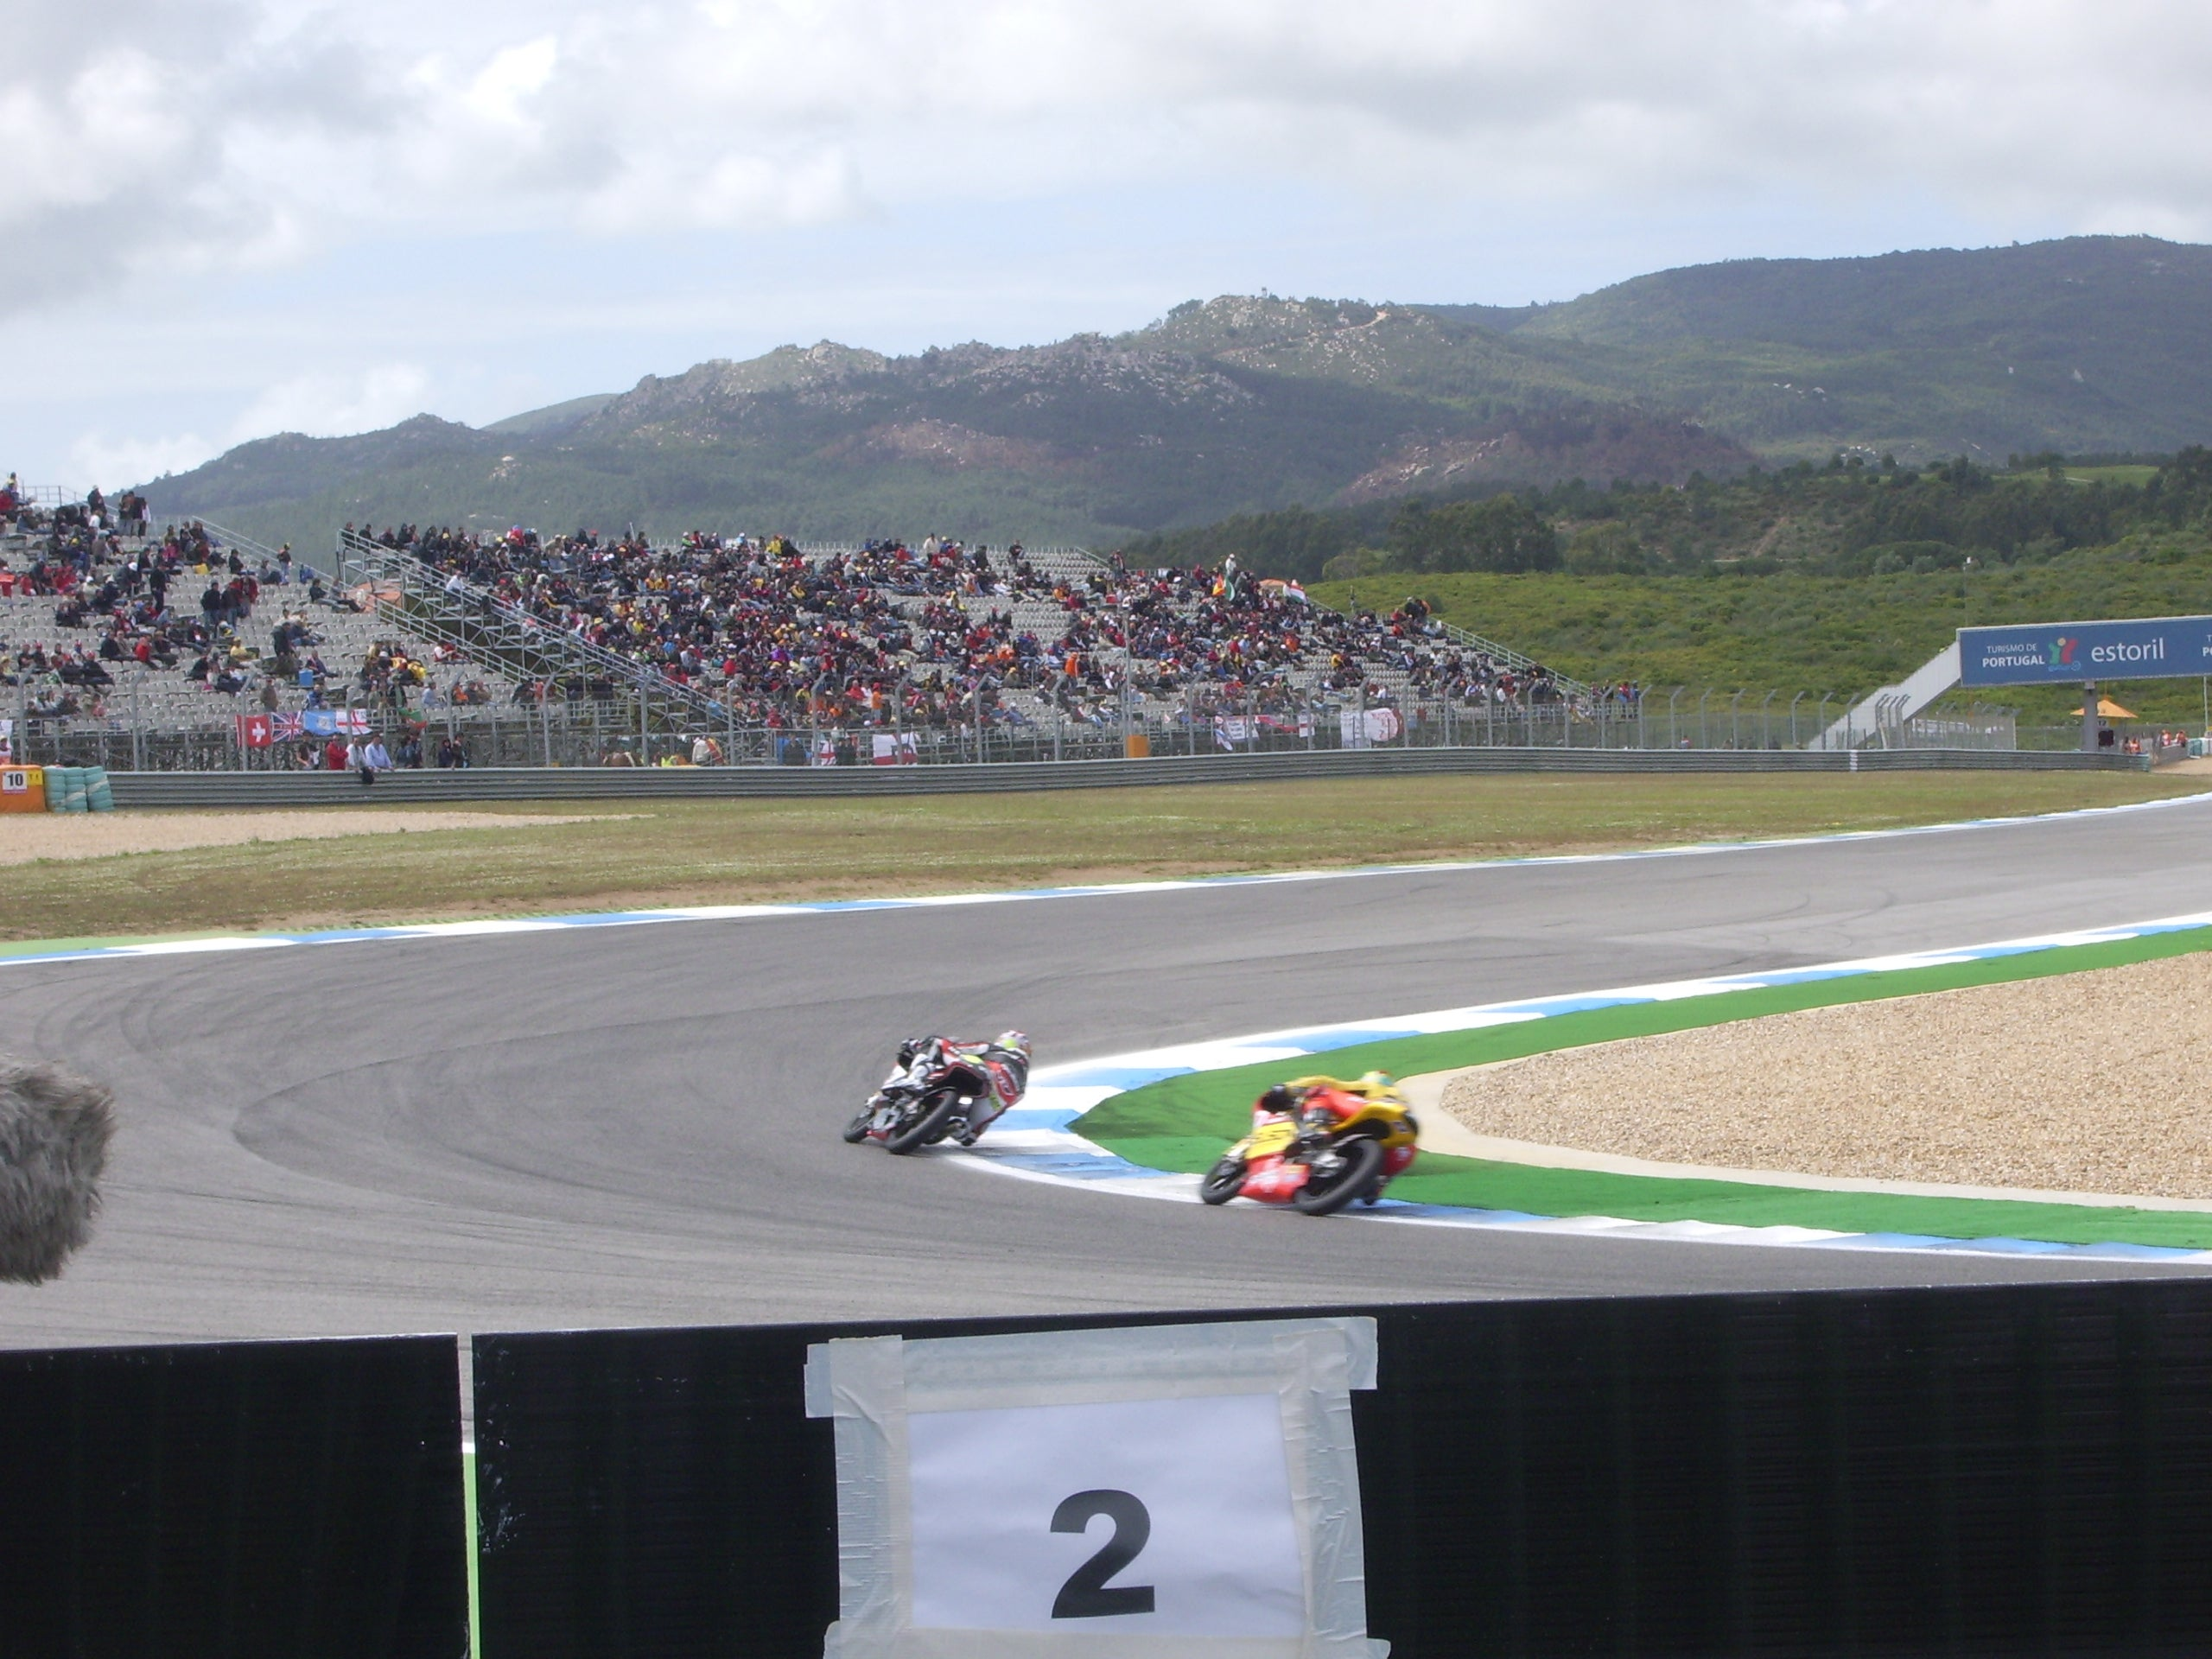 Deportes en Autódromo do Estoril